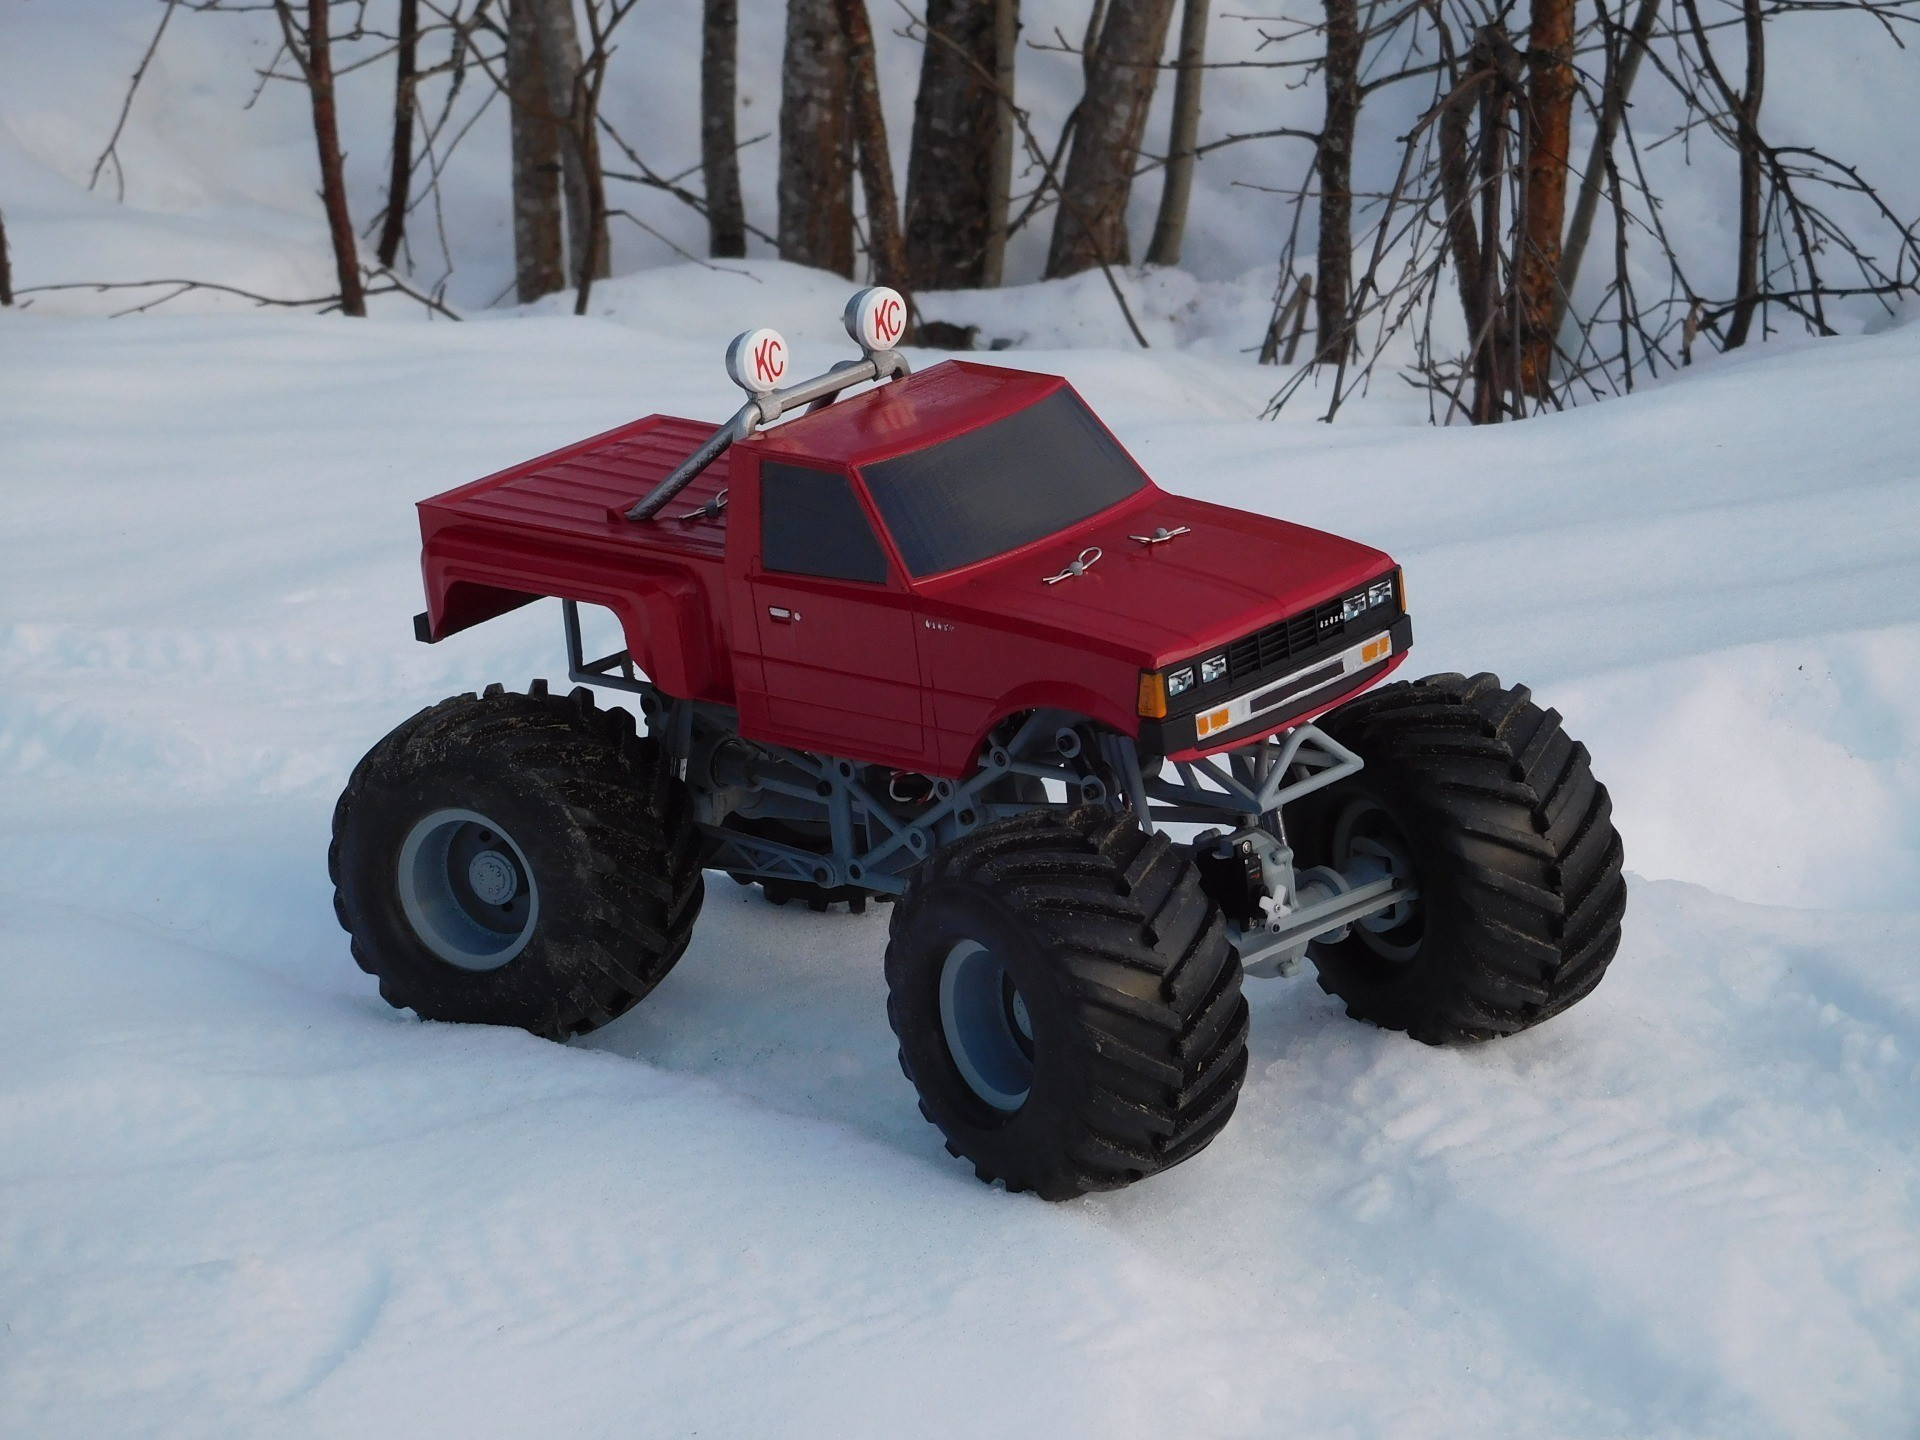 DSCN1201.JPG Download free STL file Fully printable Monster Truck • 3D printer design, tahustvedt